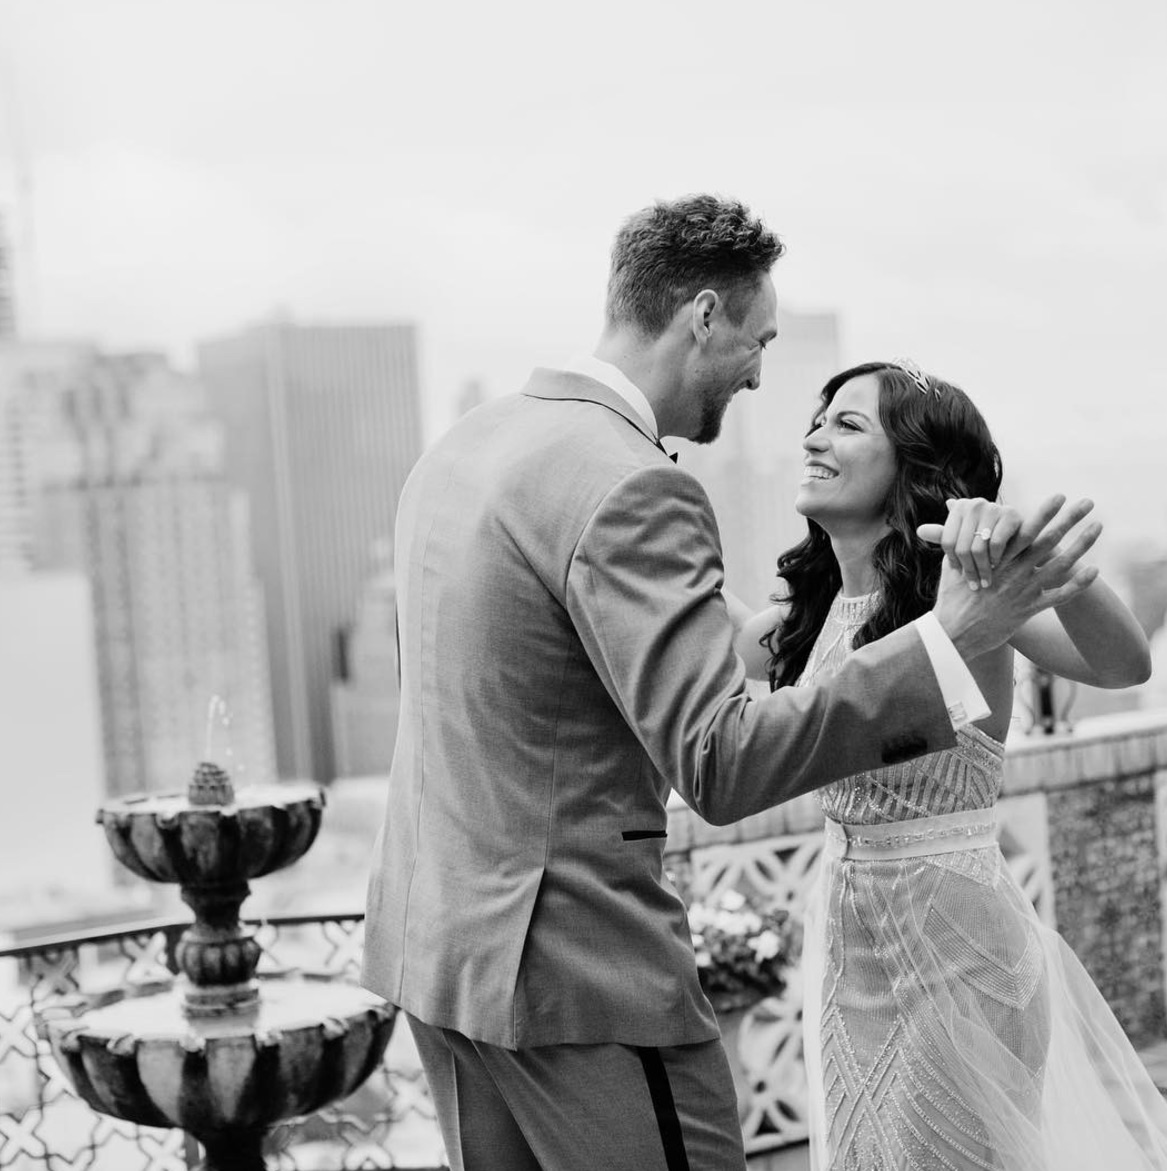 Hunter Pence and his bride, Alexis, on their wedding day